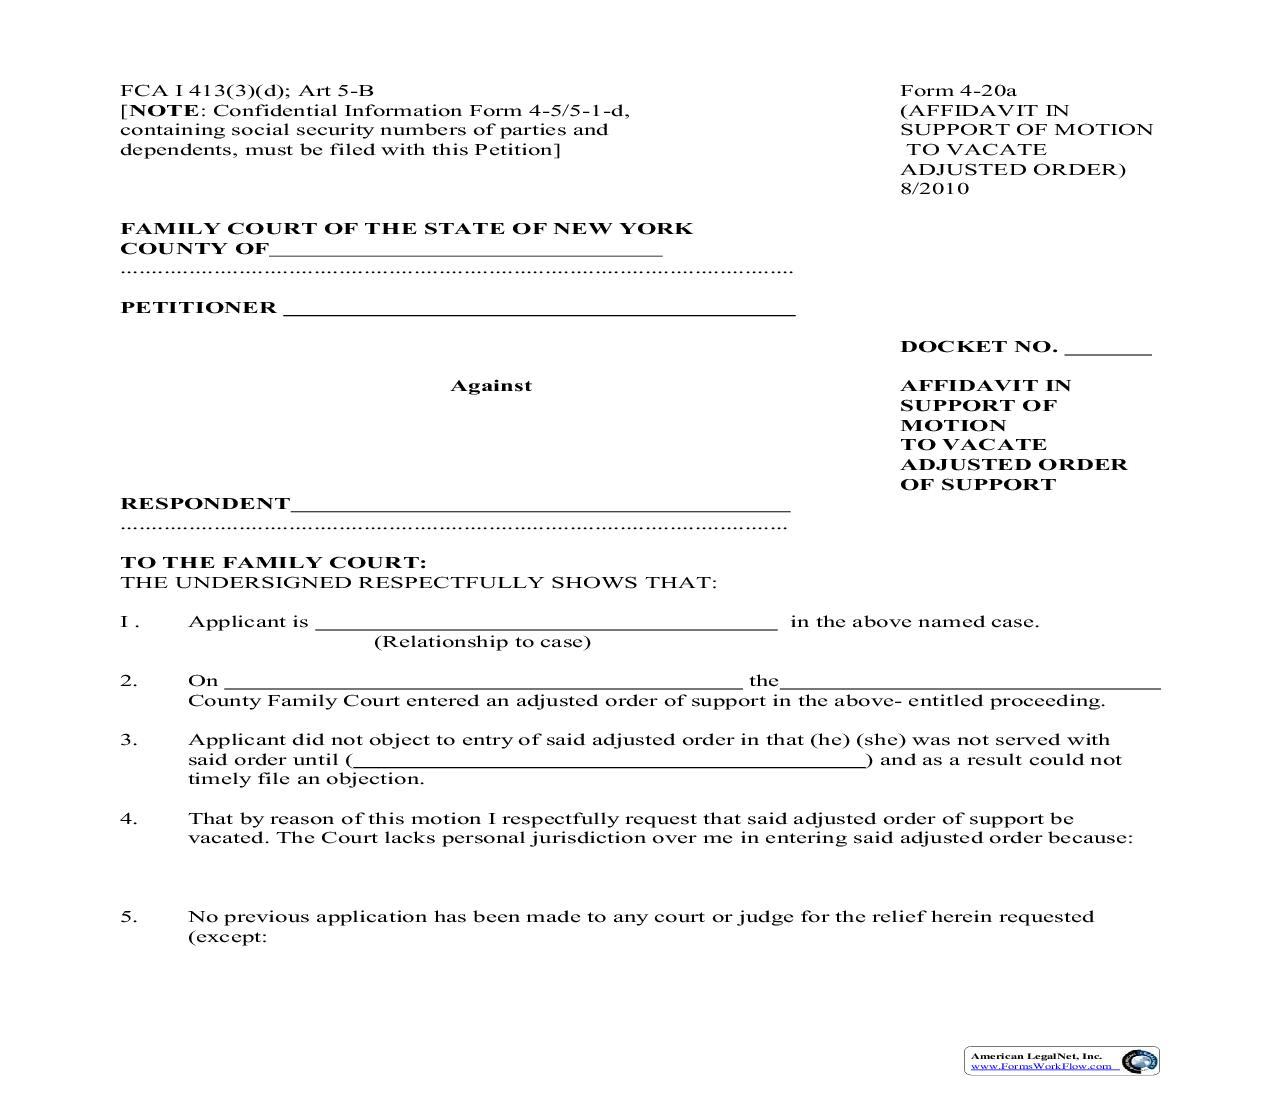 Affidavit In Support Of Motion To Vacate Adjusted Order Of Support {4-20a}   Pdf Fpdf Doc Docx   New York